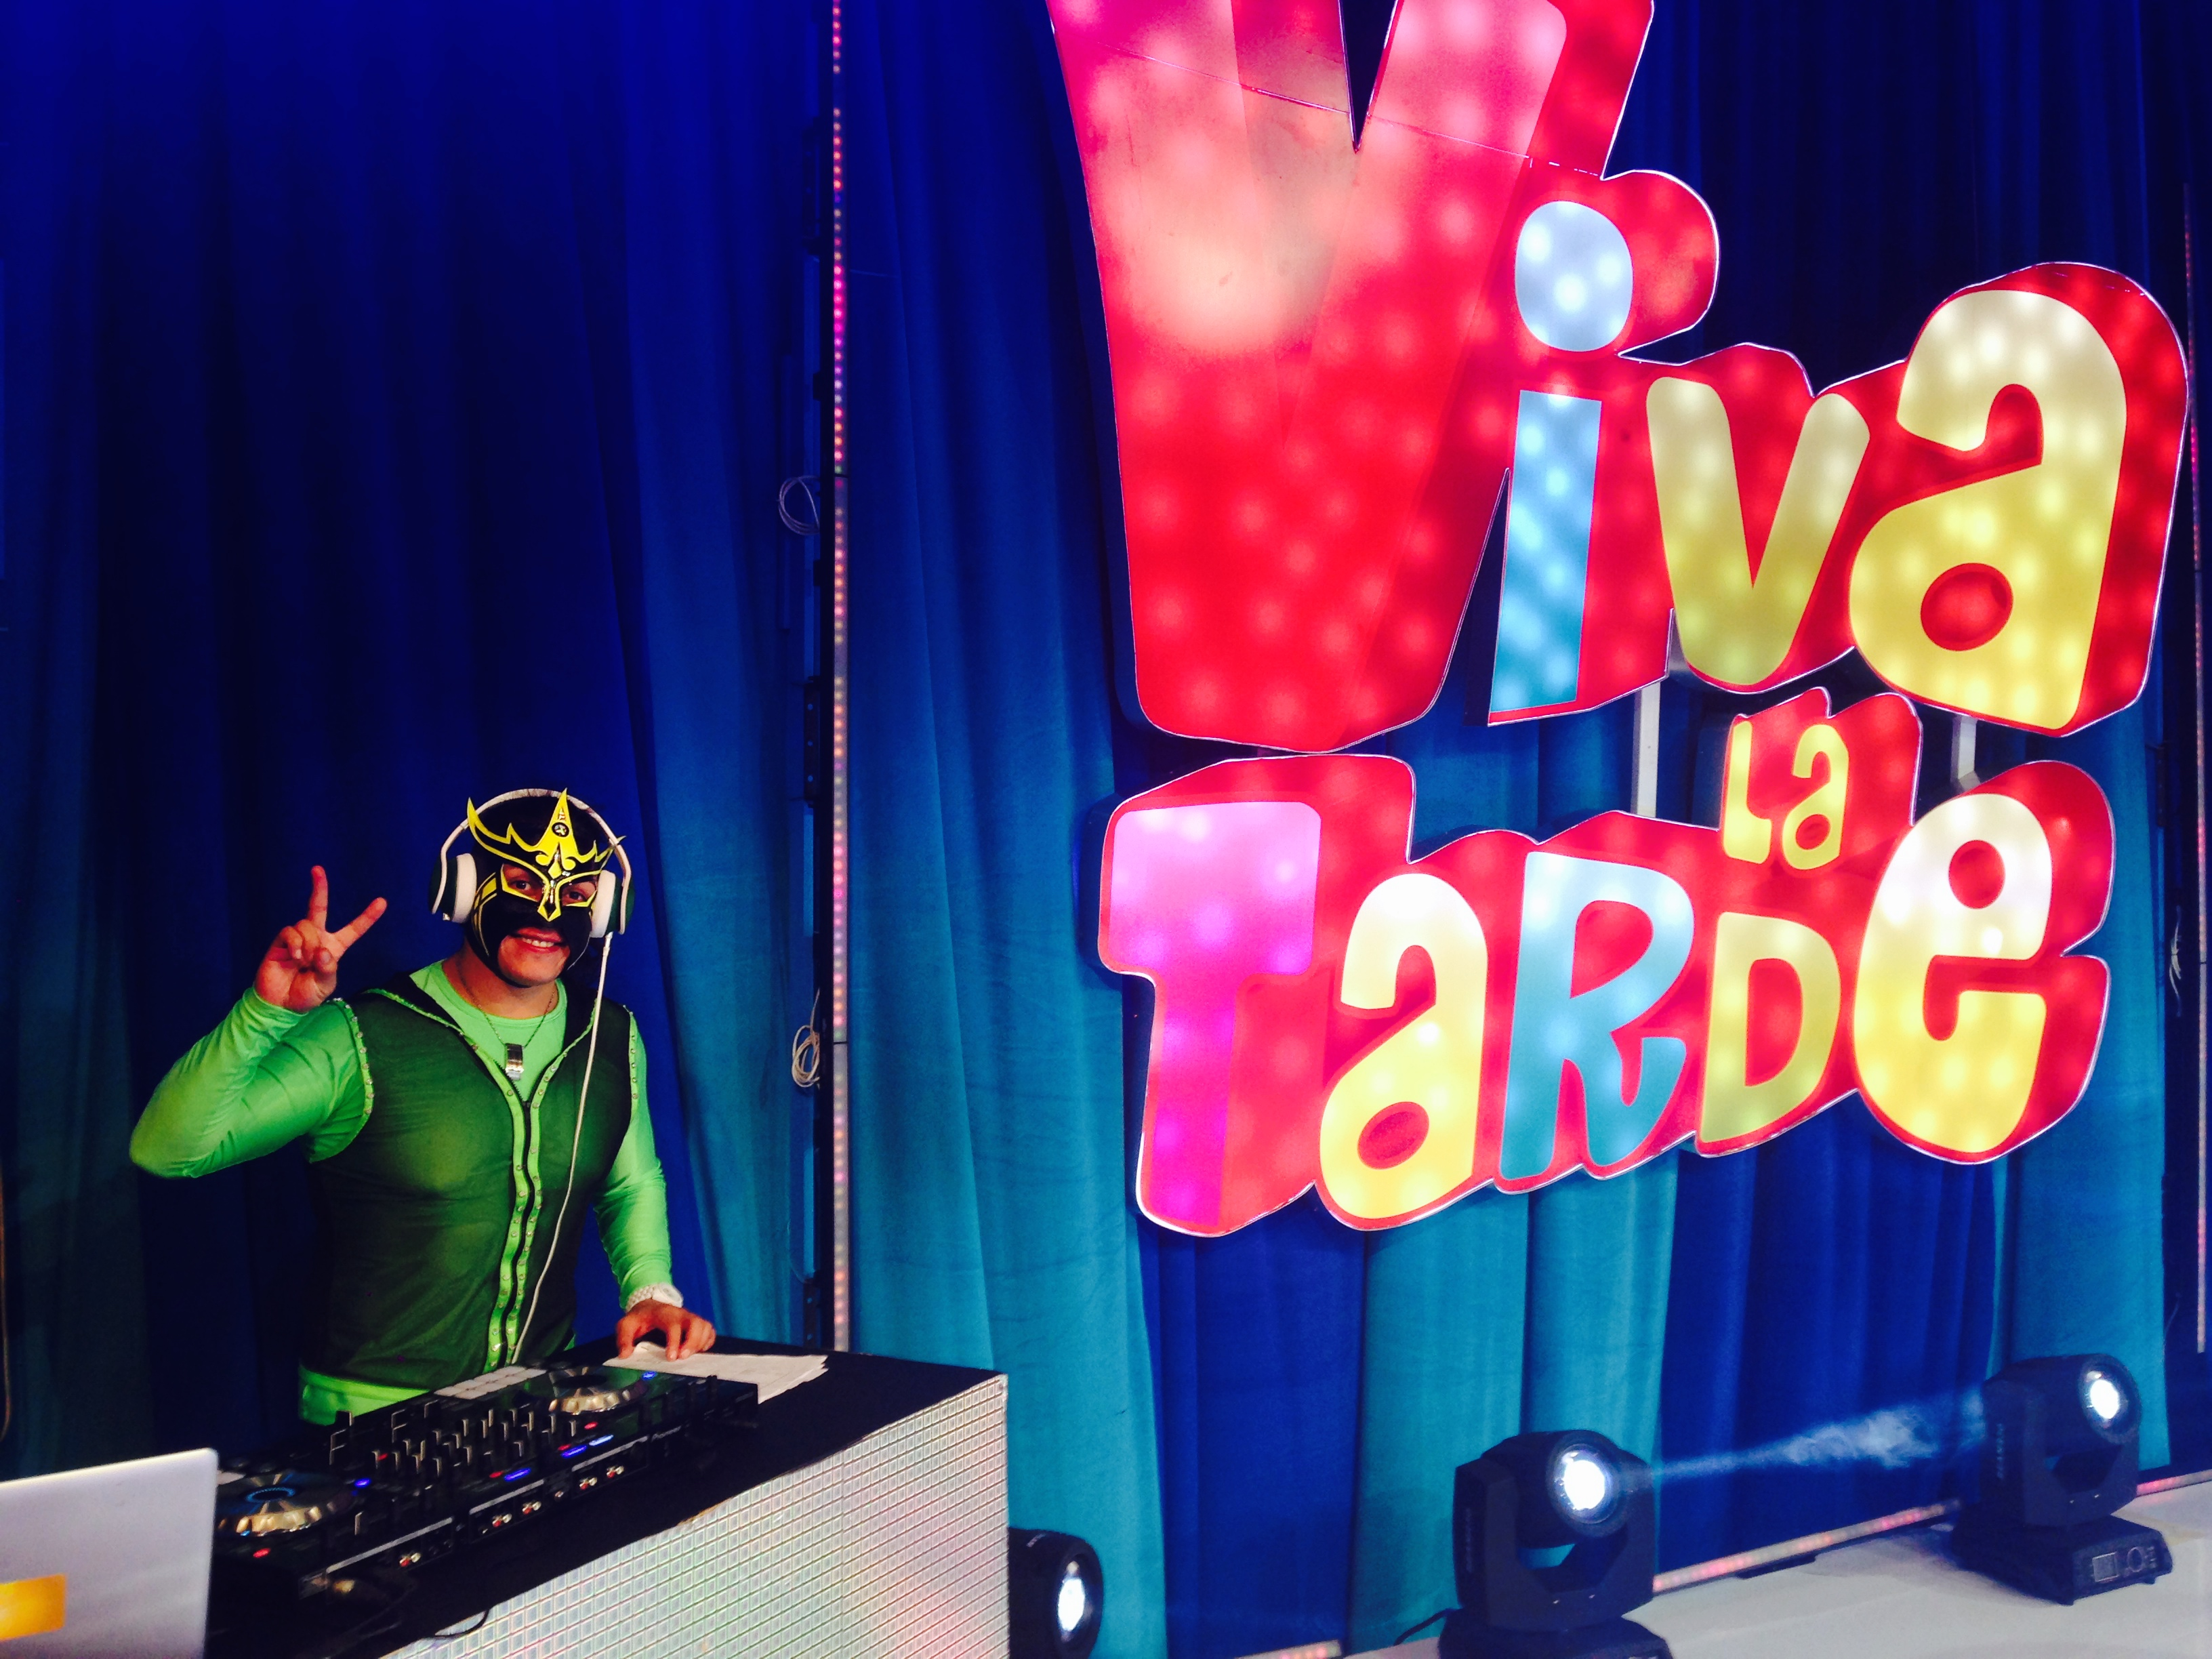 DJ COMO INVITADOS ESPECIALES EN TV SHOWS 3